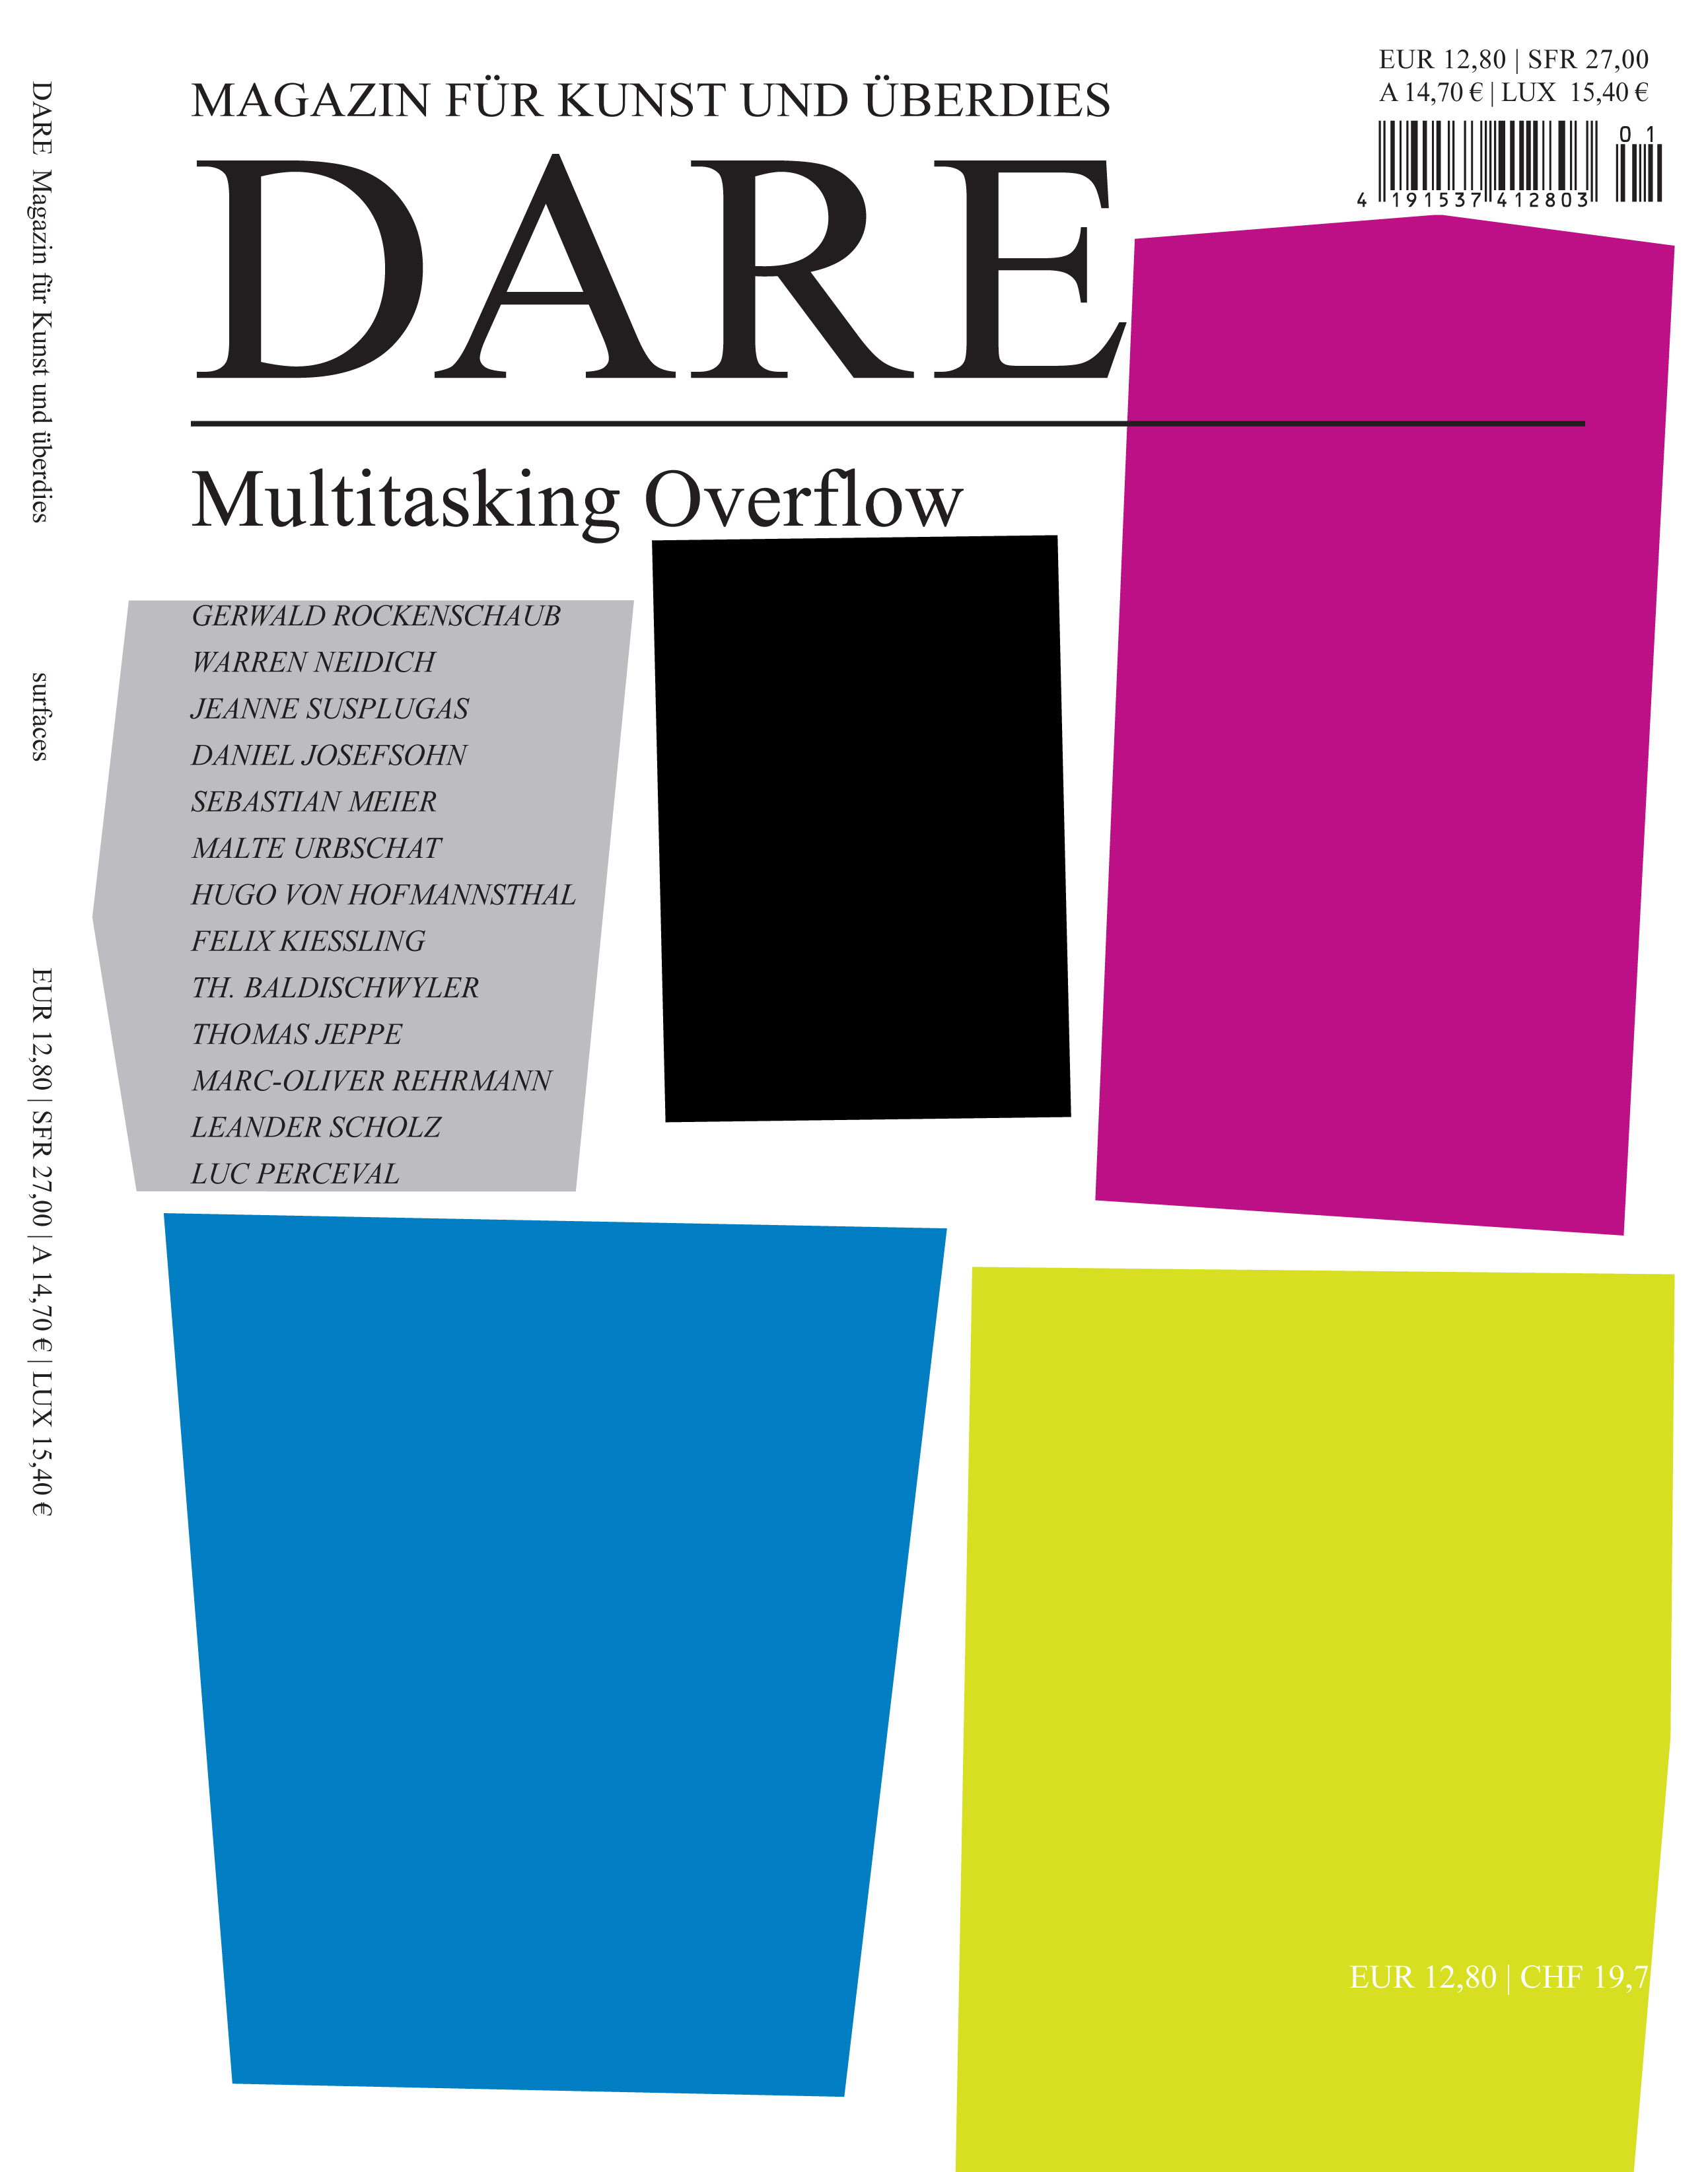 Dare Magazin - Multitasking Overflow